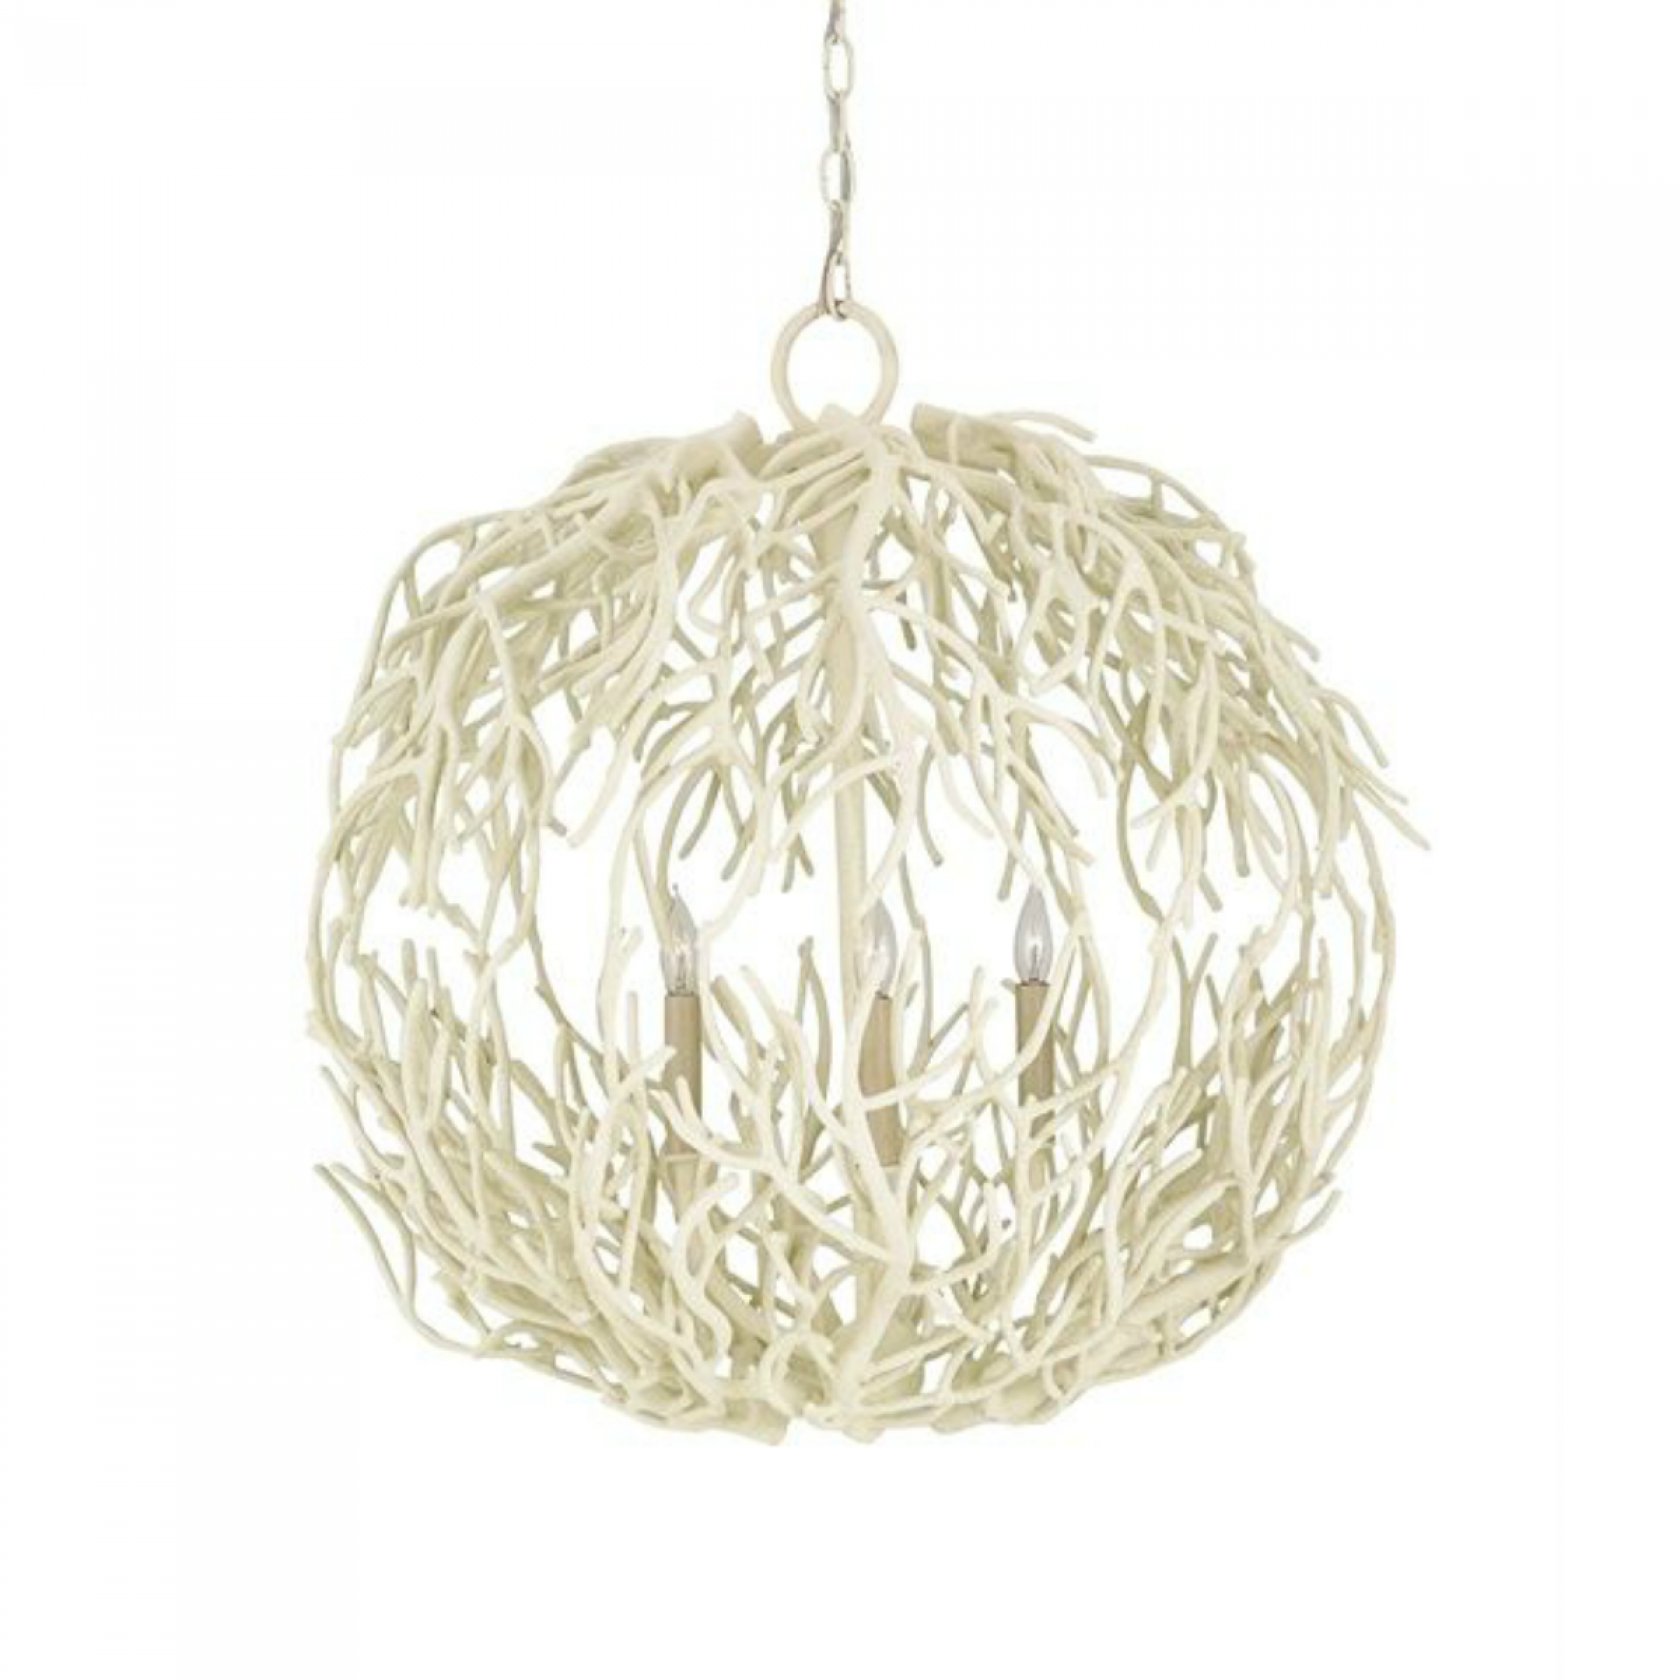 Tidal wrought iron with a white coral finish orb chandelier home tidal wrought iron with a white coral finish orb chandelier arubaitofo Choice Image